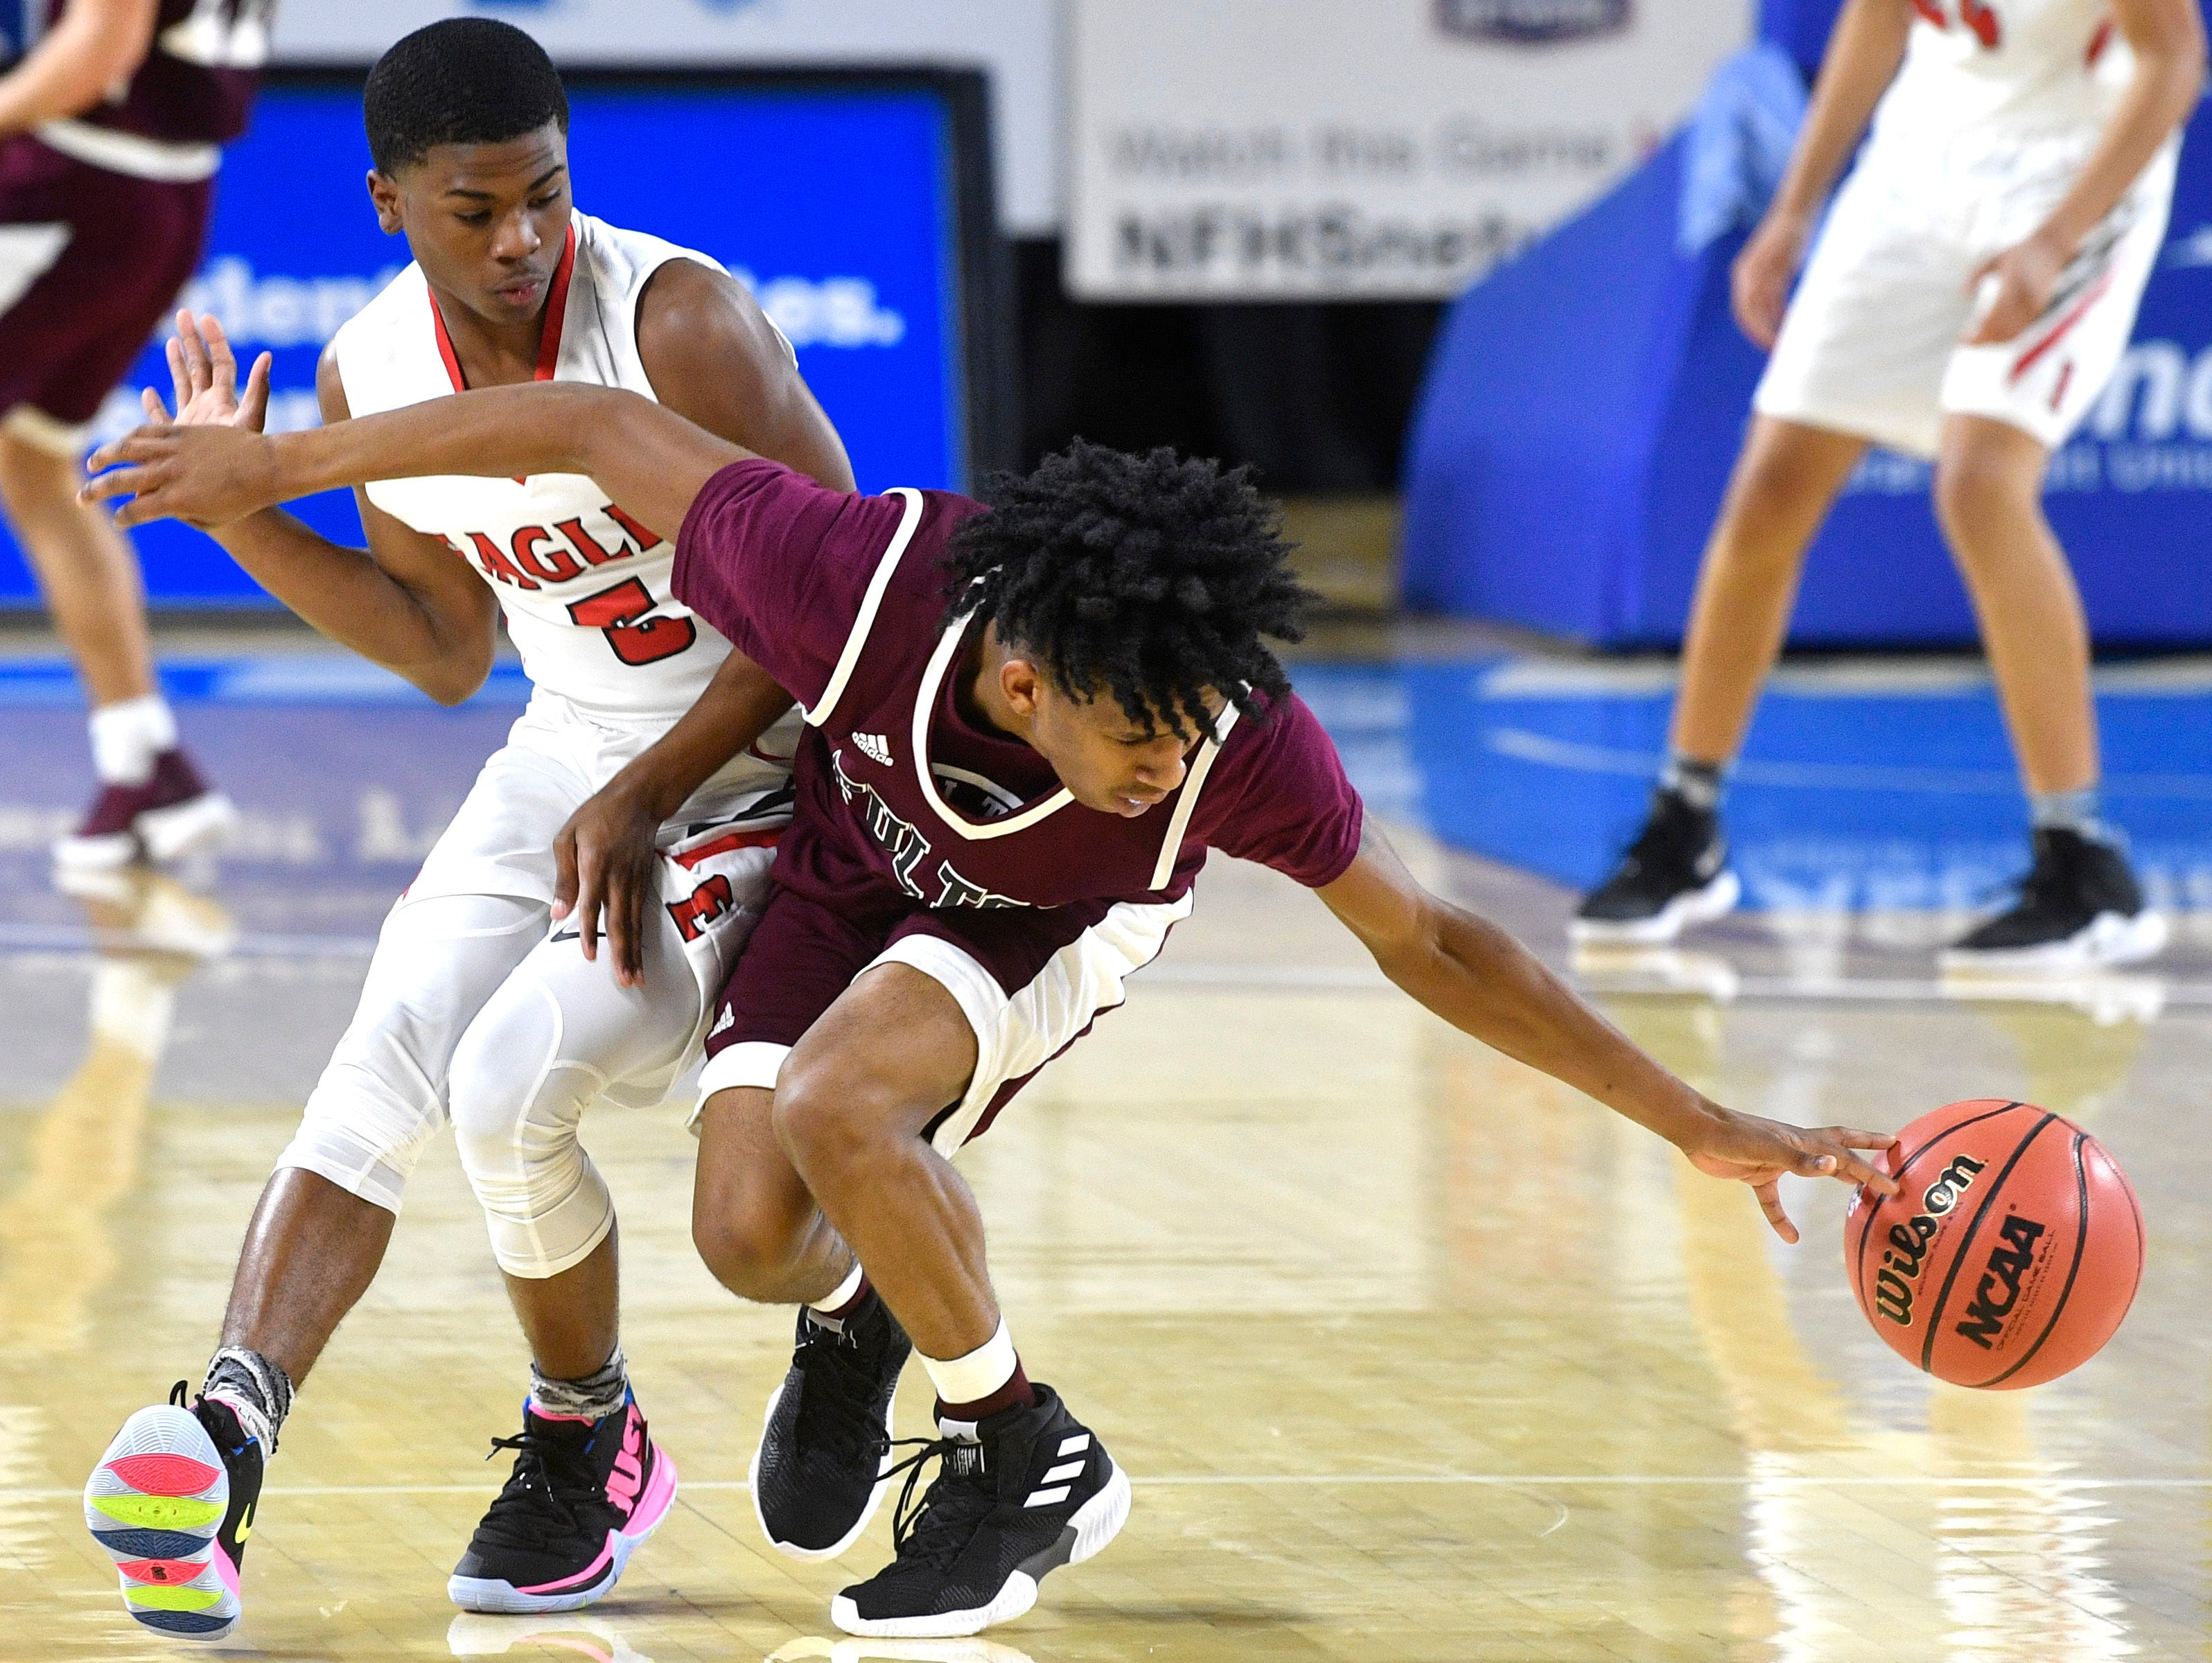 East Nashville Joshua Cole (2) knock the ball loose from Fulton's Edward Lacy (4) as East Nashville plays Fulton in the TSSAA Class AA semifinal  Friday, March 15, 2019, in Murfreesboro, Tenn.